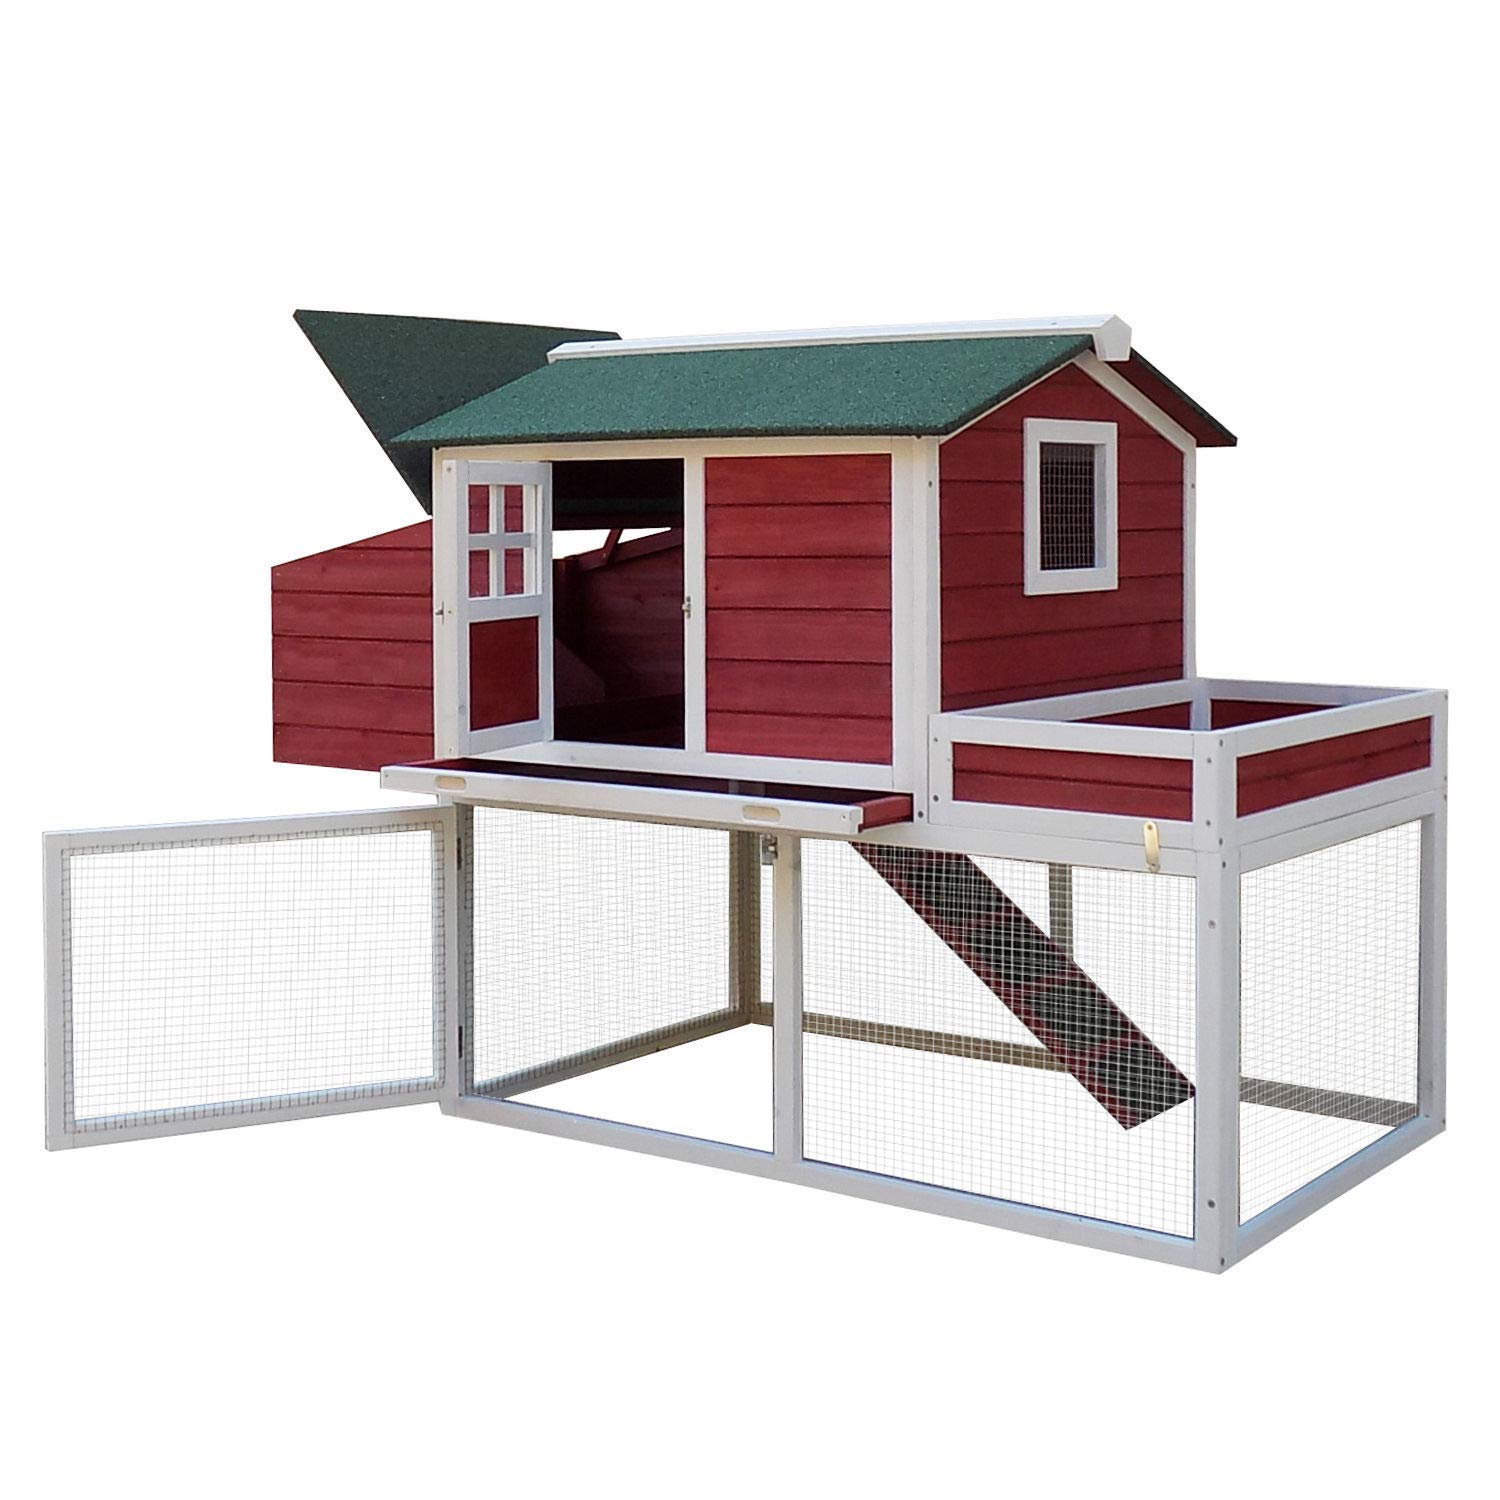 GraceShop House of Chicken Chicken Coop Wooden Poultry Hen Hutch House Nesting Cage Box 63''